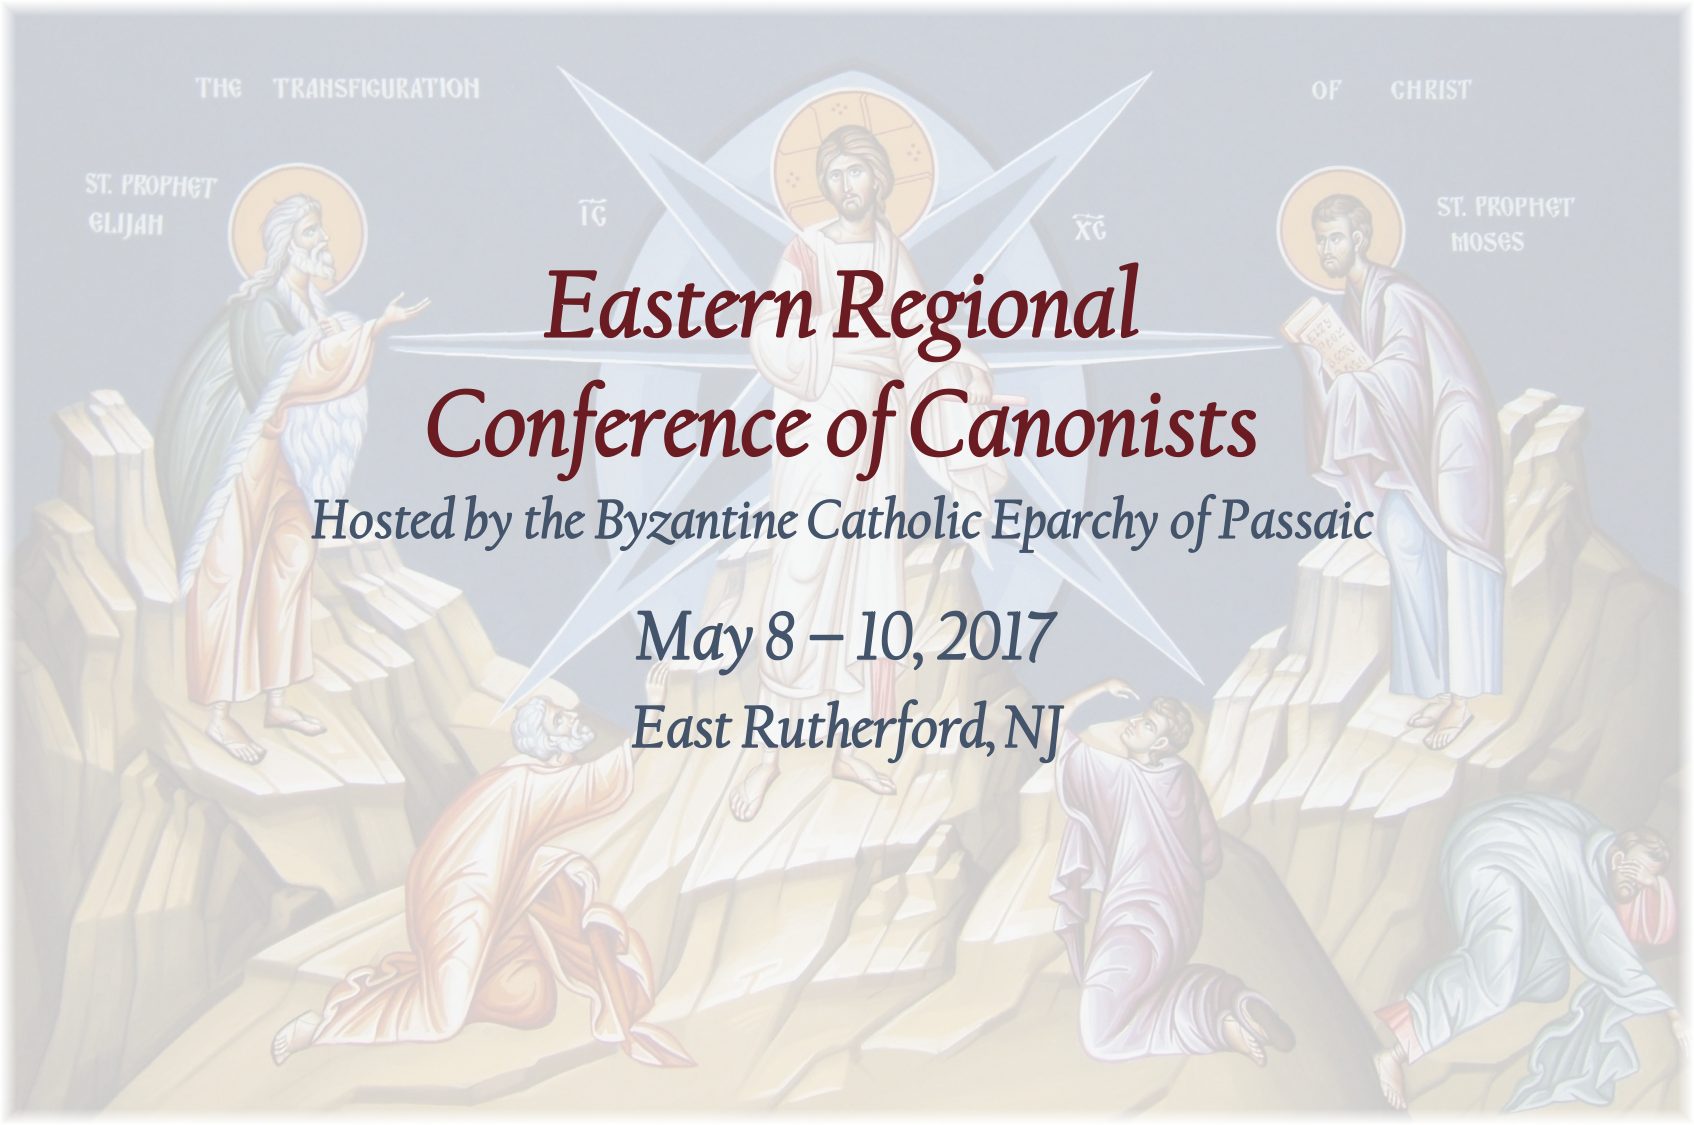 Eastern Regional Conference of Canonists   Hilton Meadowlands     Evensi